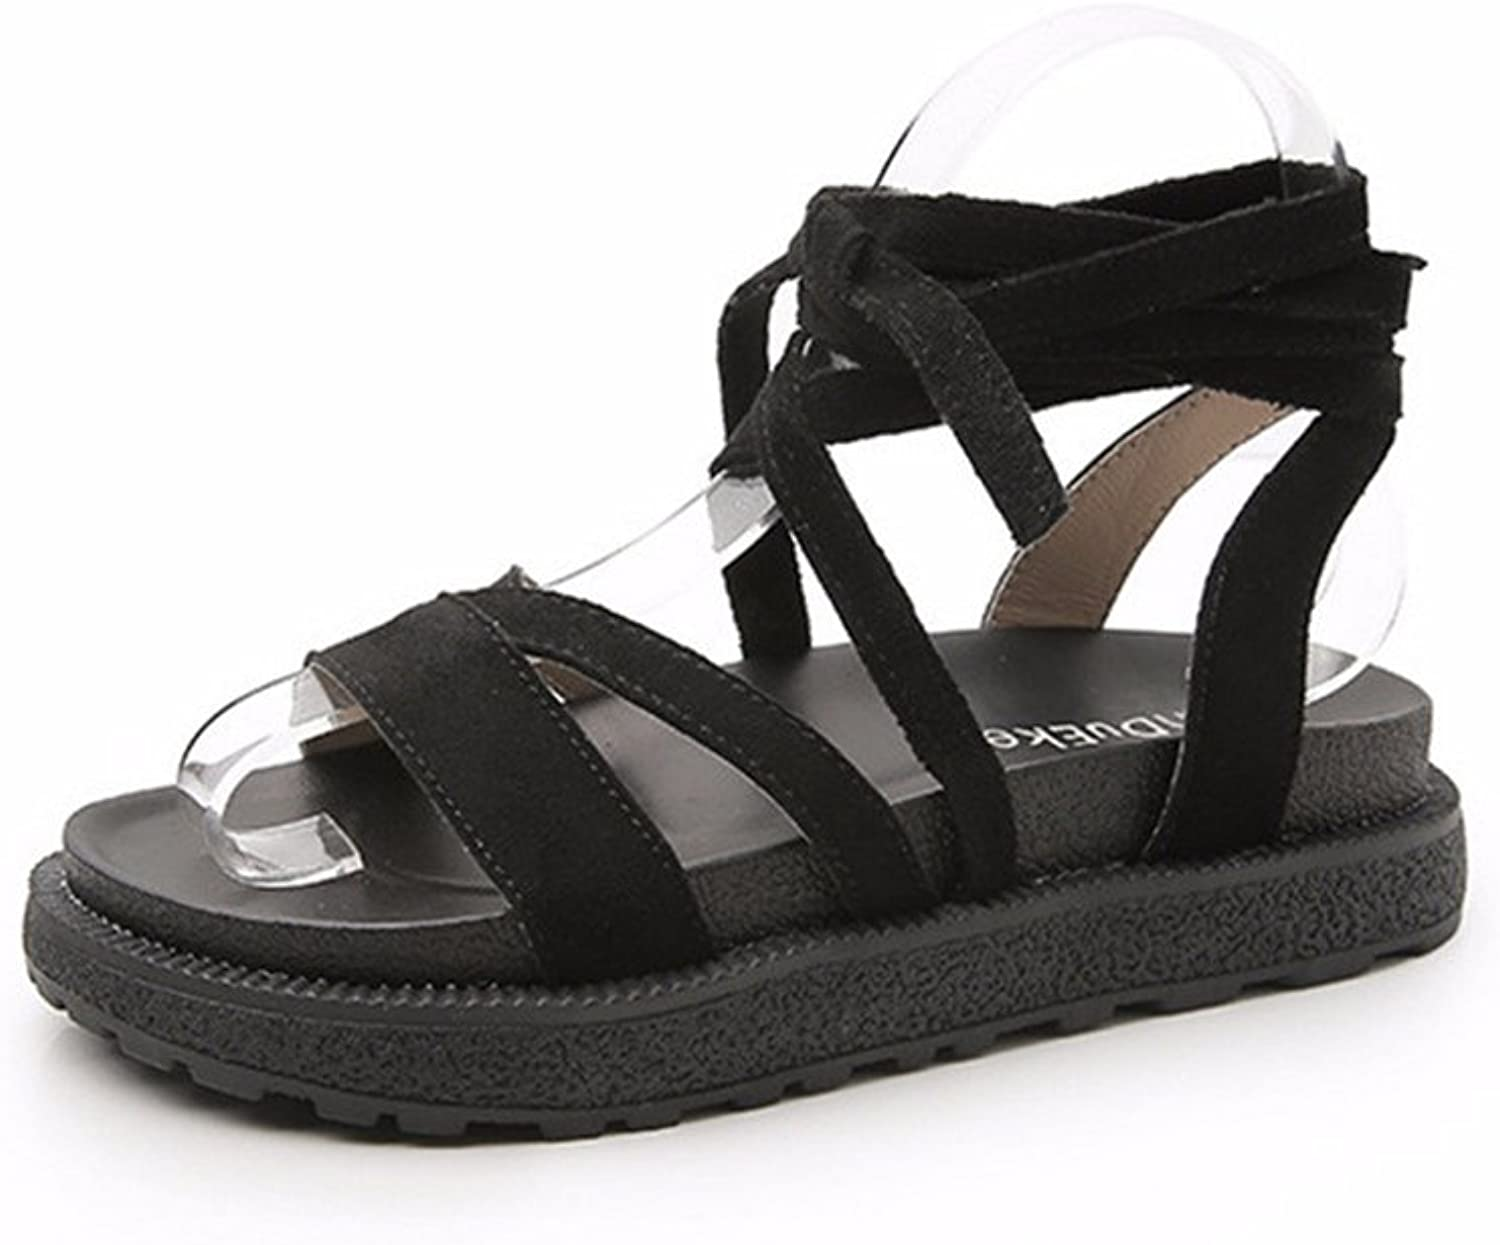 Super explosion Womens Lace up Flat Sandals Ankle Strappy Gladiator Sandal Flat shoes